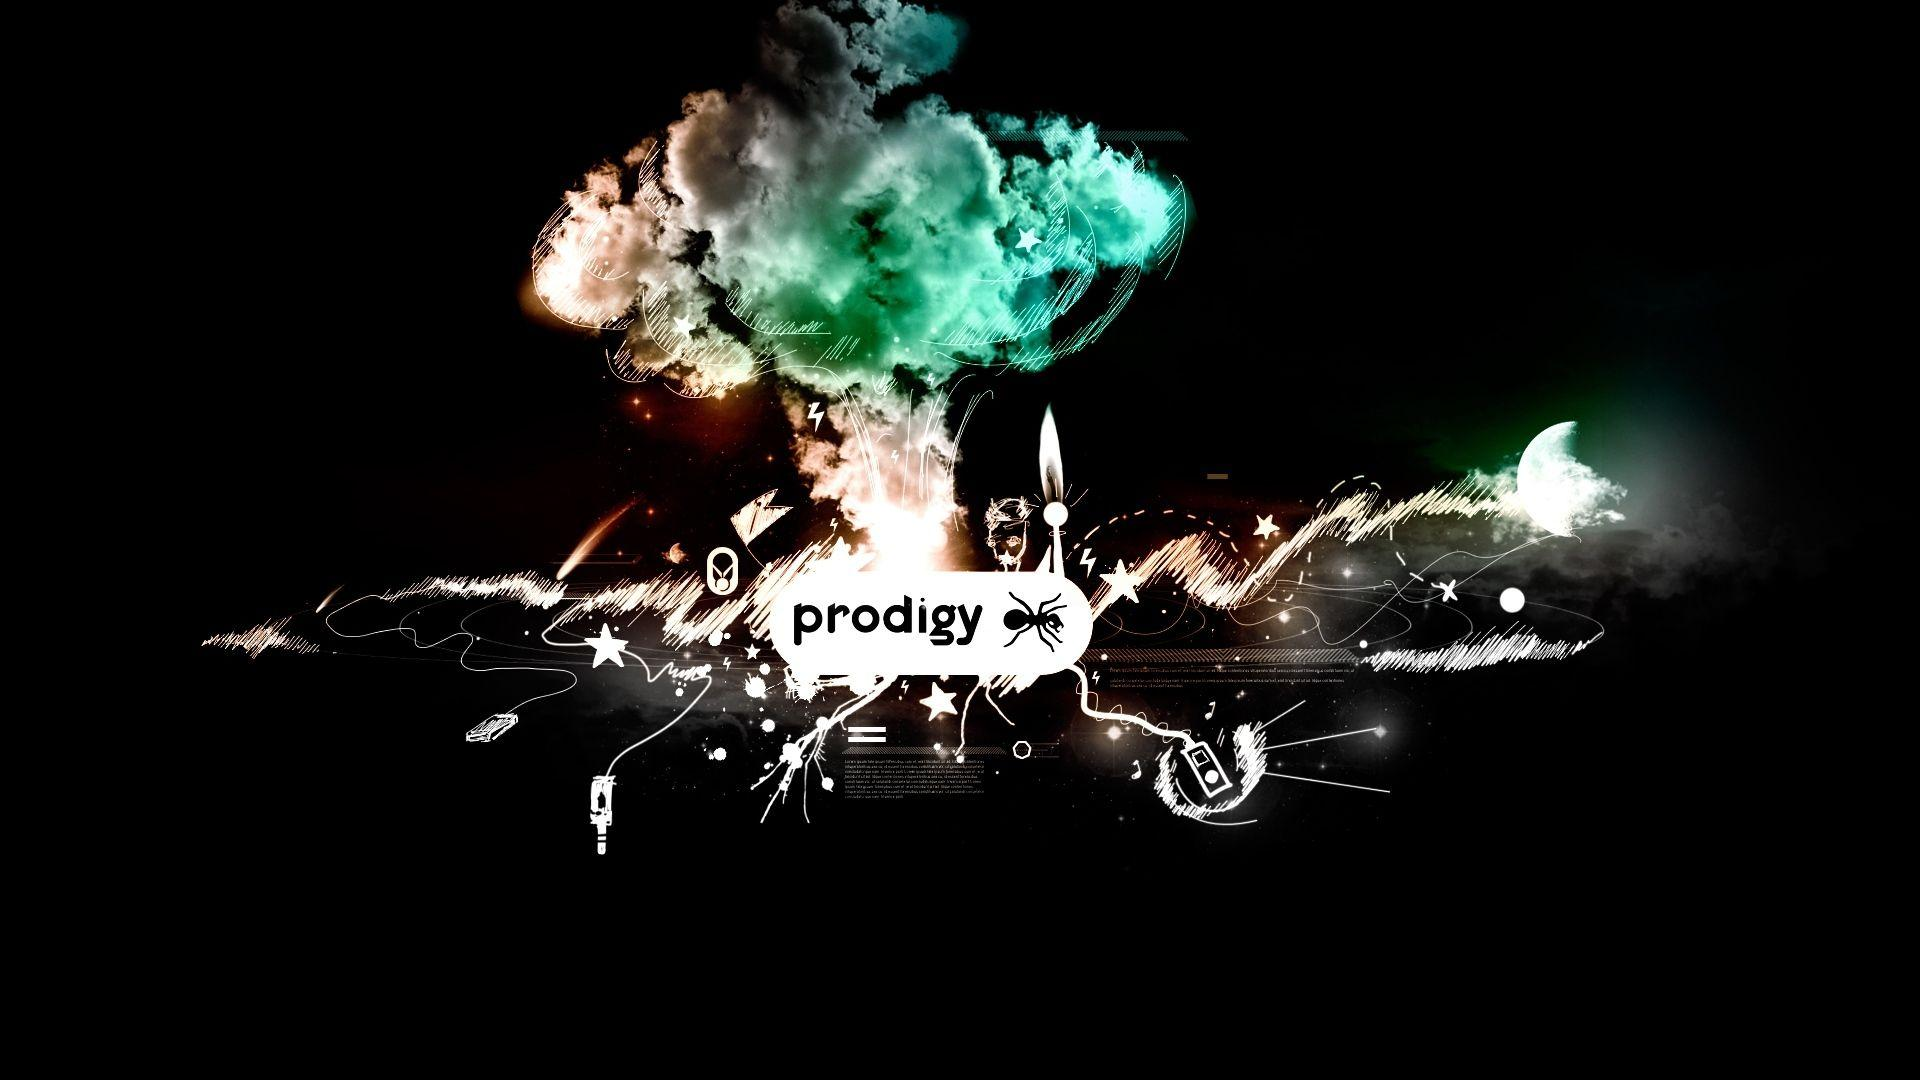 Prodigy Wallpapers Wallpaper Cave